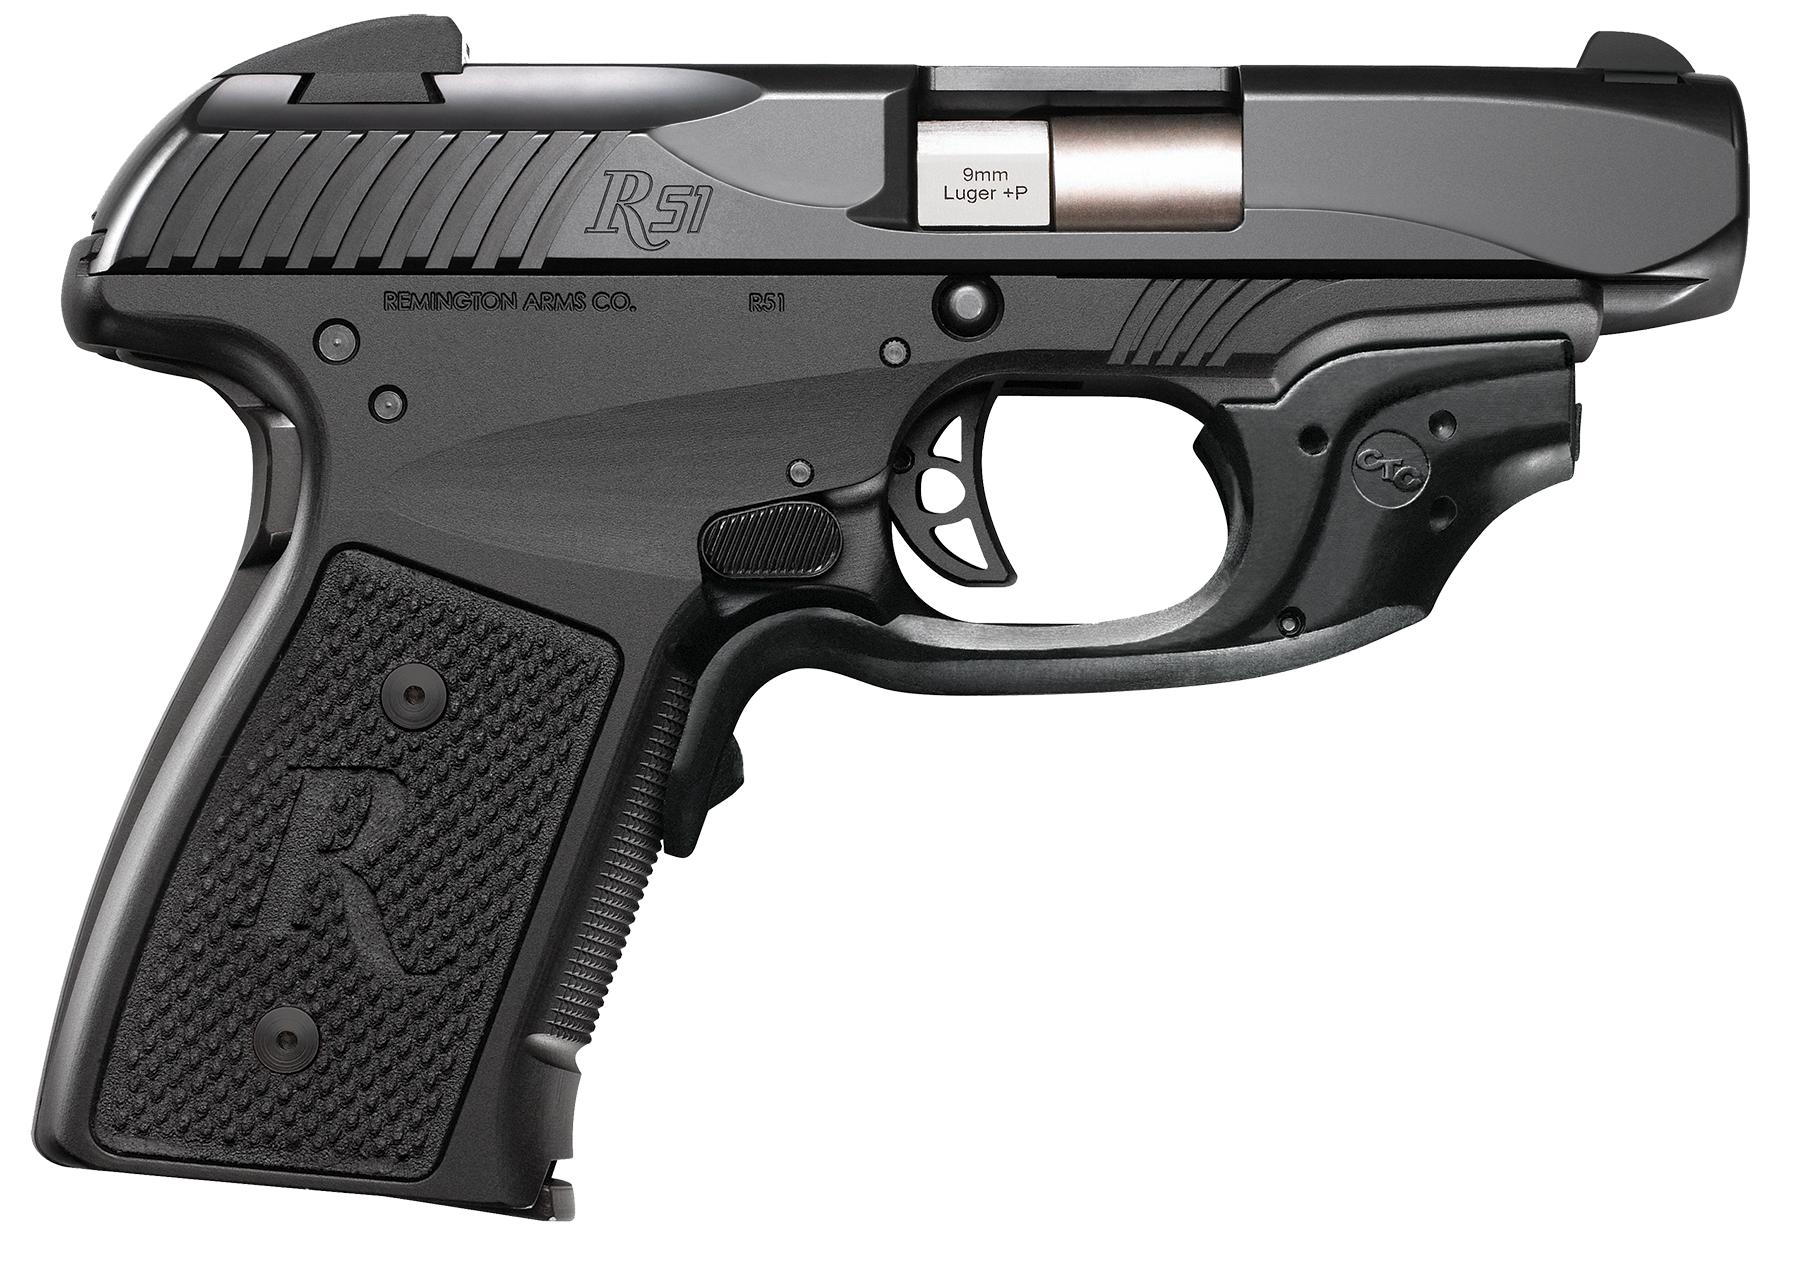 Remington Firearms 96432 R51 Single 9mm Luger +P 3.4